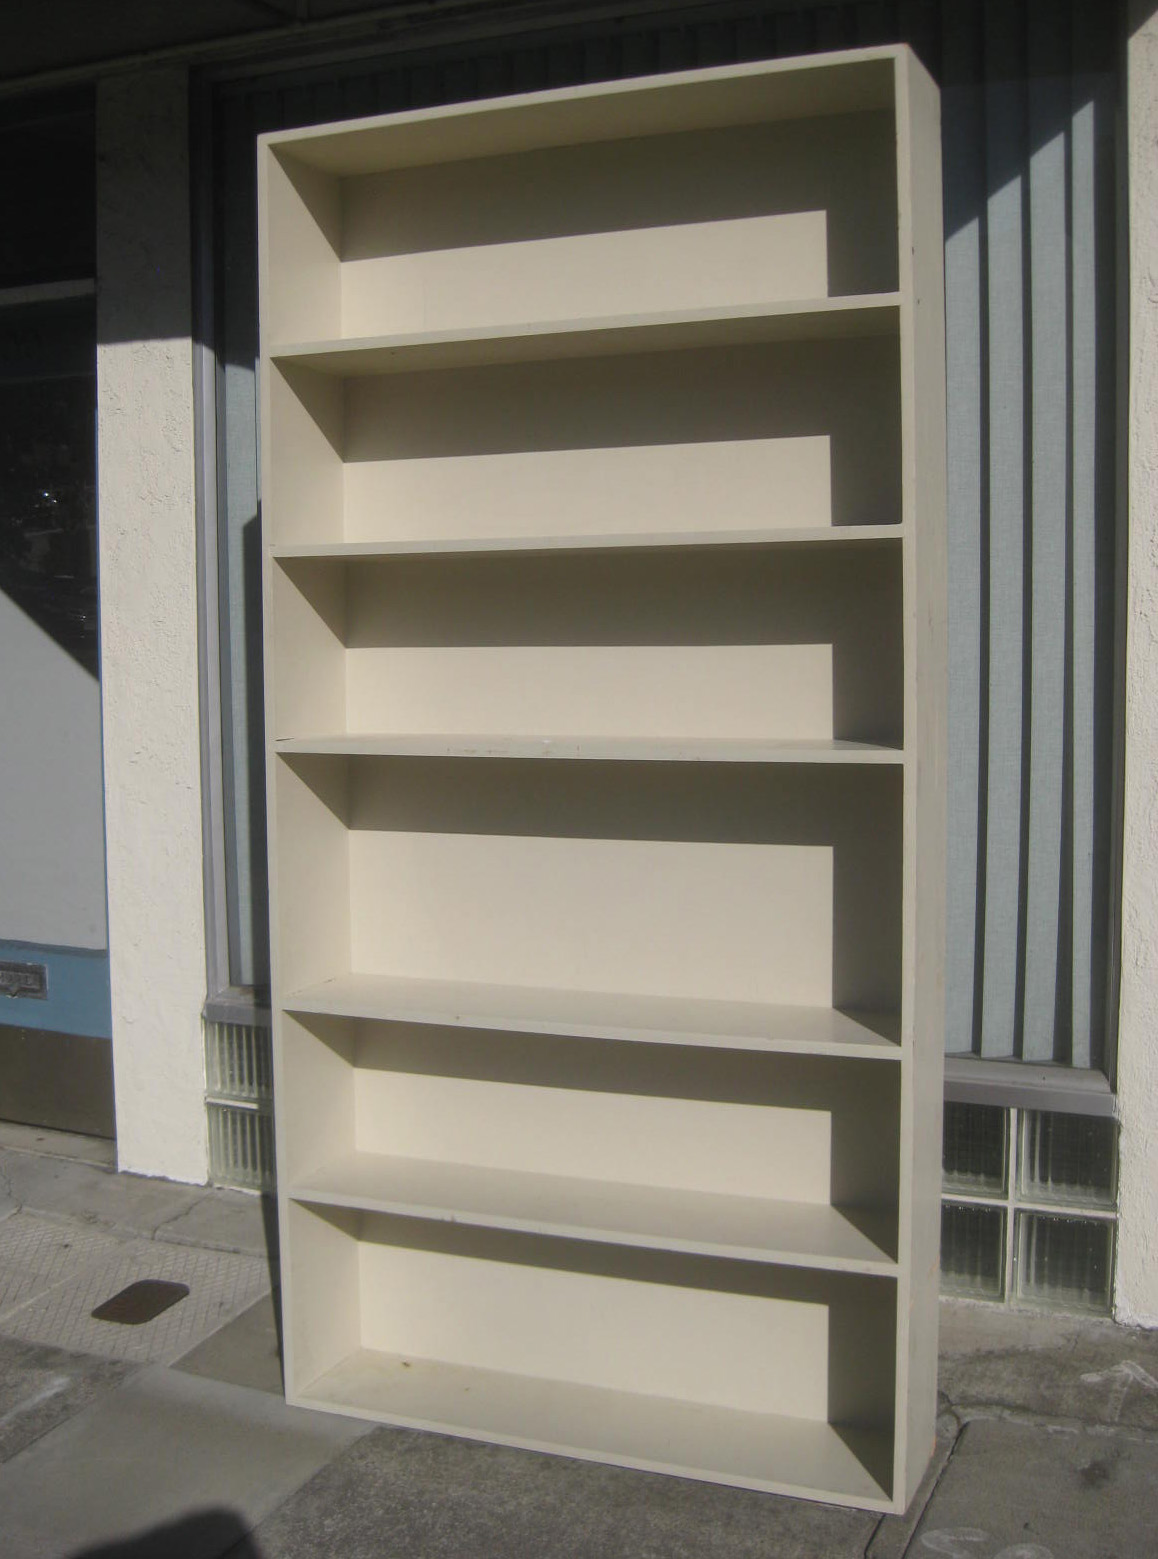 #766B55  FURNITURE & COLLECTIBLES: SOLD 7 Foot Tall Wooden Bookshelf $80 with 1158x1559 px of Best 8 Foot Tall Bookcases 15591158 image @ avoidforclosure.info